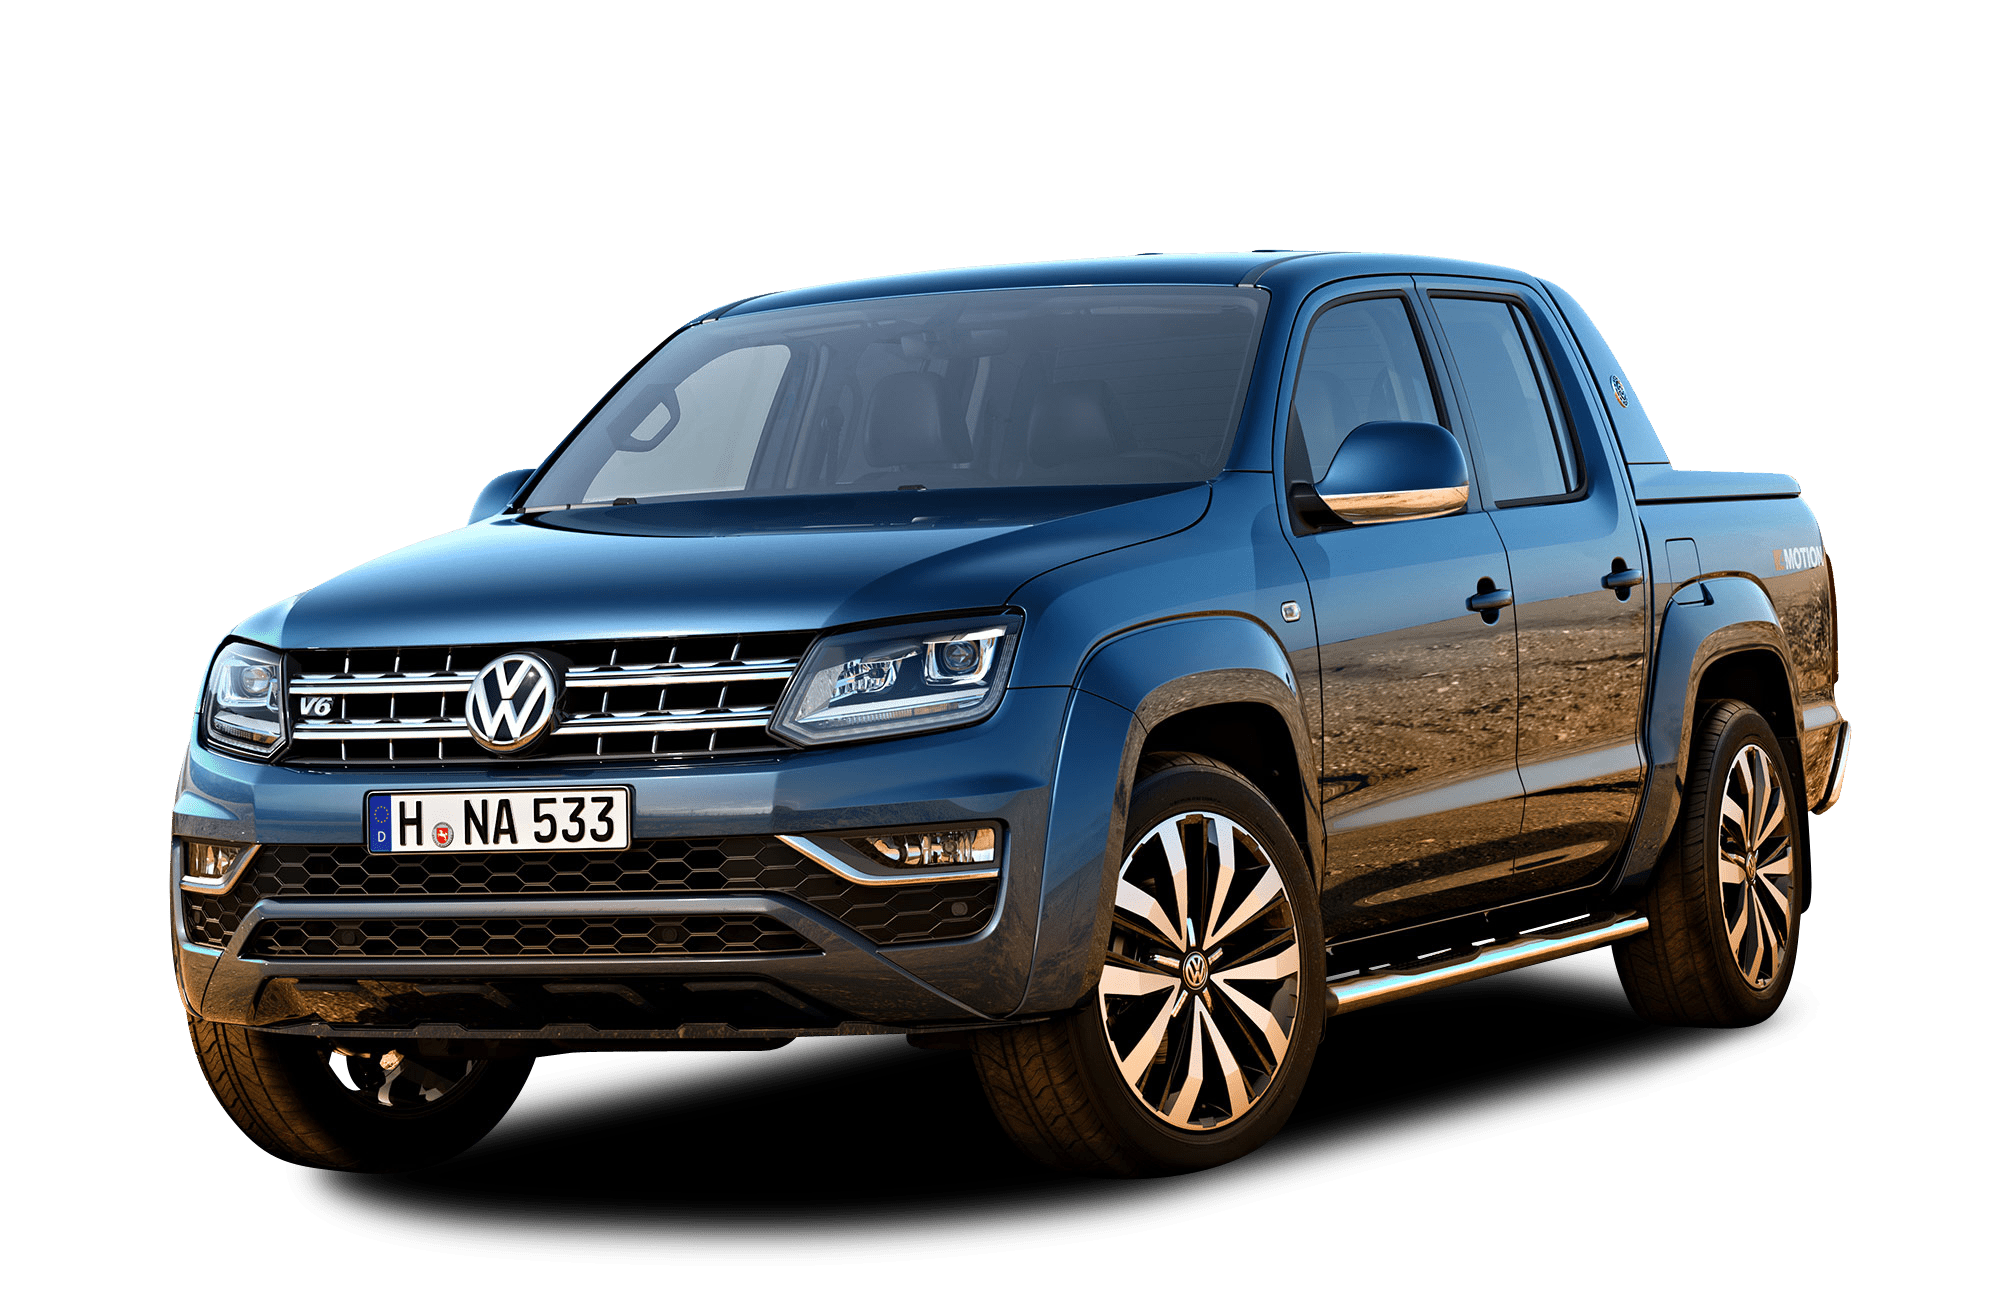 volkswagen amarok my tdi scab trendline autocars blog. Black Bedroom Furniture Sets. Home Design Ideas